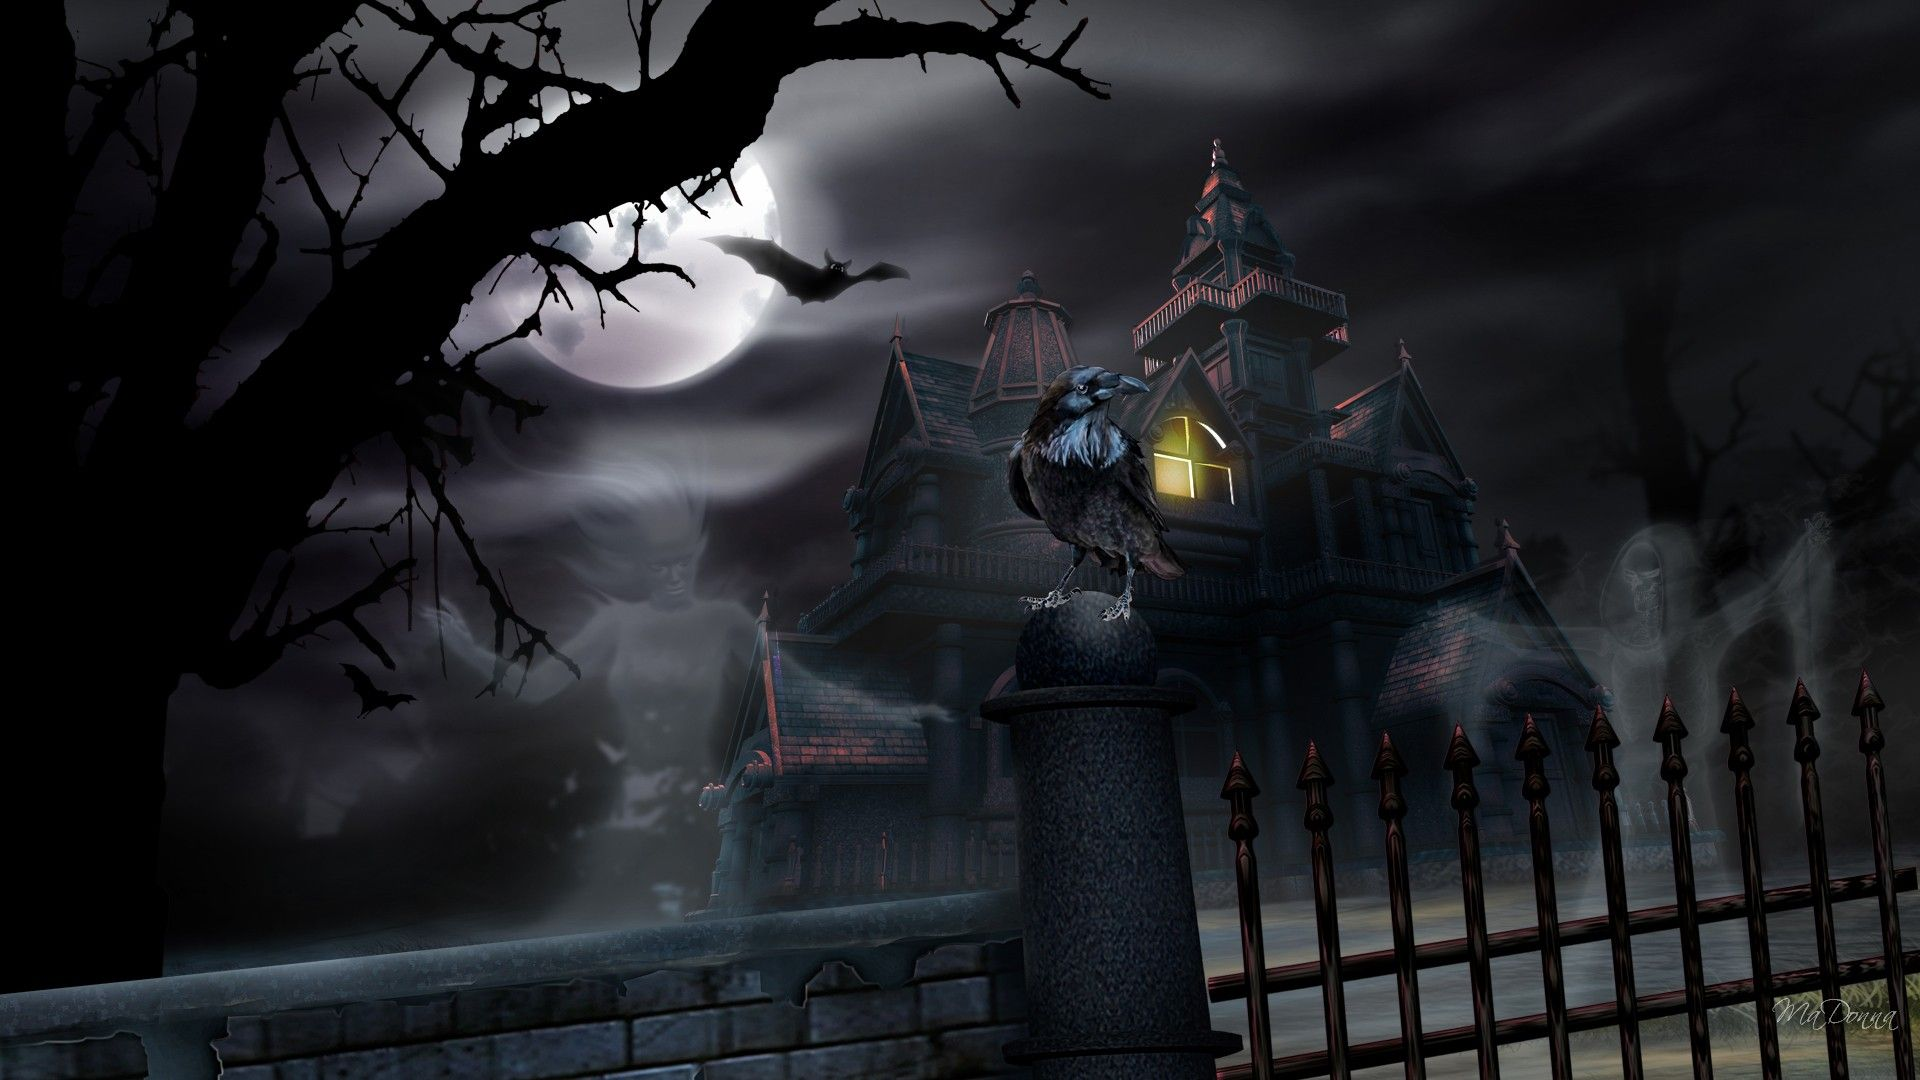 Dark Building Ghost House Wallpaper Free Halloween Wallpaper Halloween Desktop Wallpaper Halloween Backgrounds